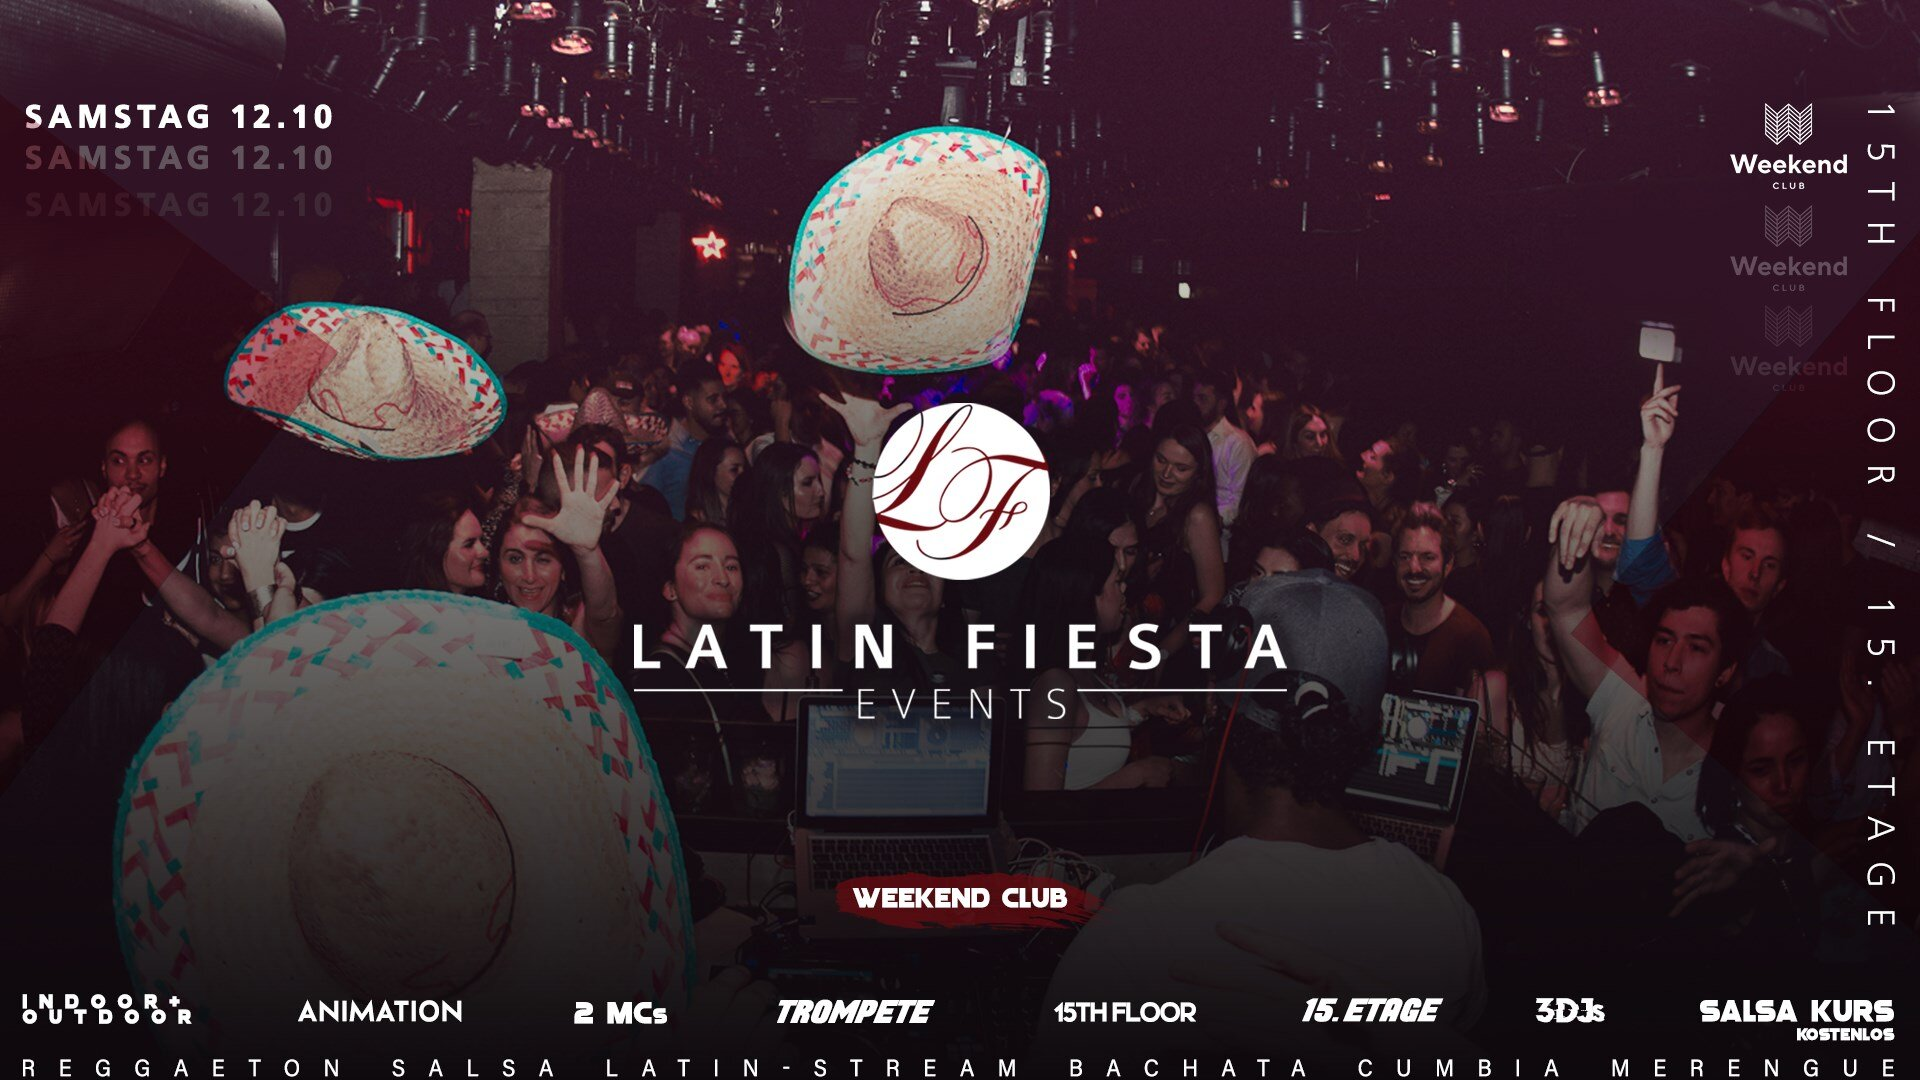 Latin Fiesta  The biggest Latin Party in Berlin returns.! Latin Fiesta- El Original shows you hot rhythms, danceable music for EVERYONE and the best view over Berlin! Only with the original you will get guaranteed authentic feeling of a whole continent. VAMOS!